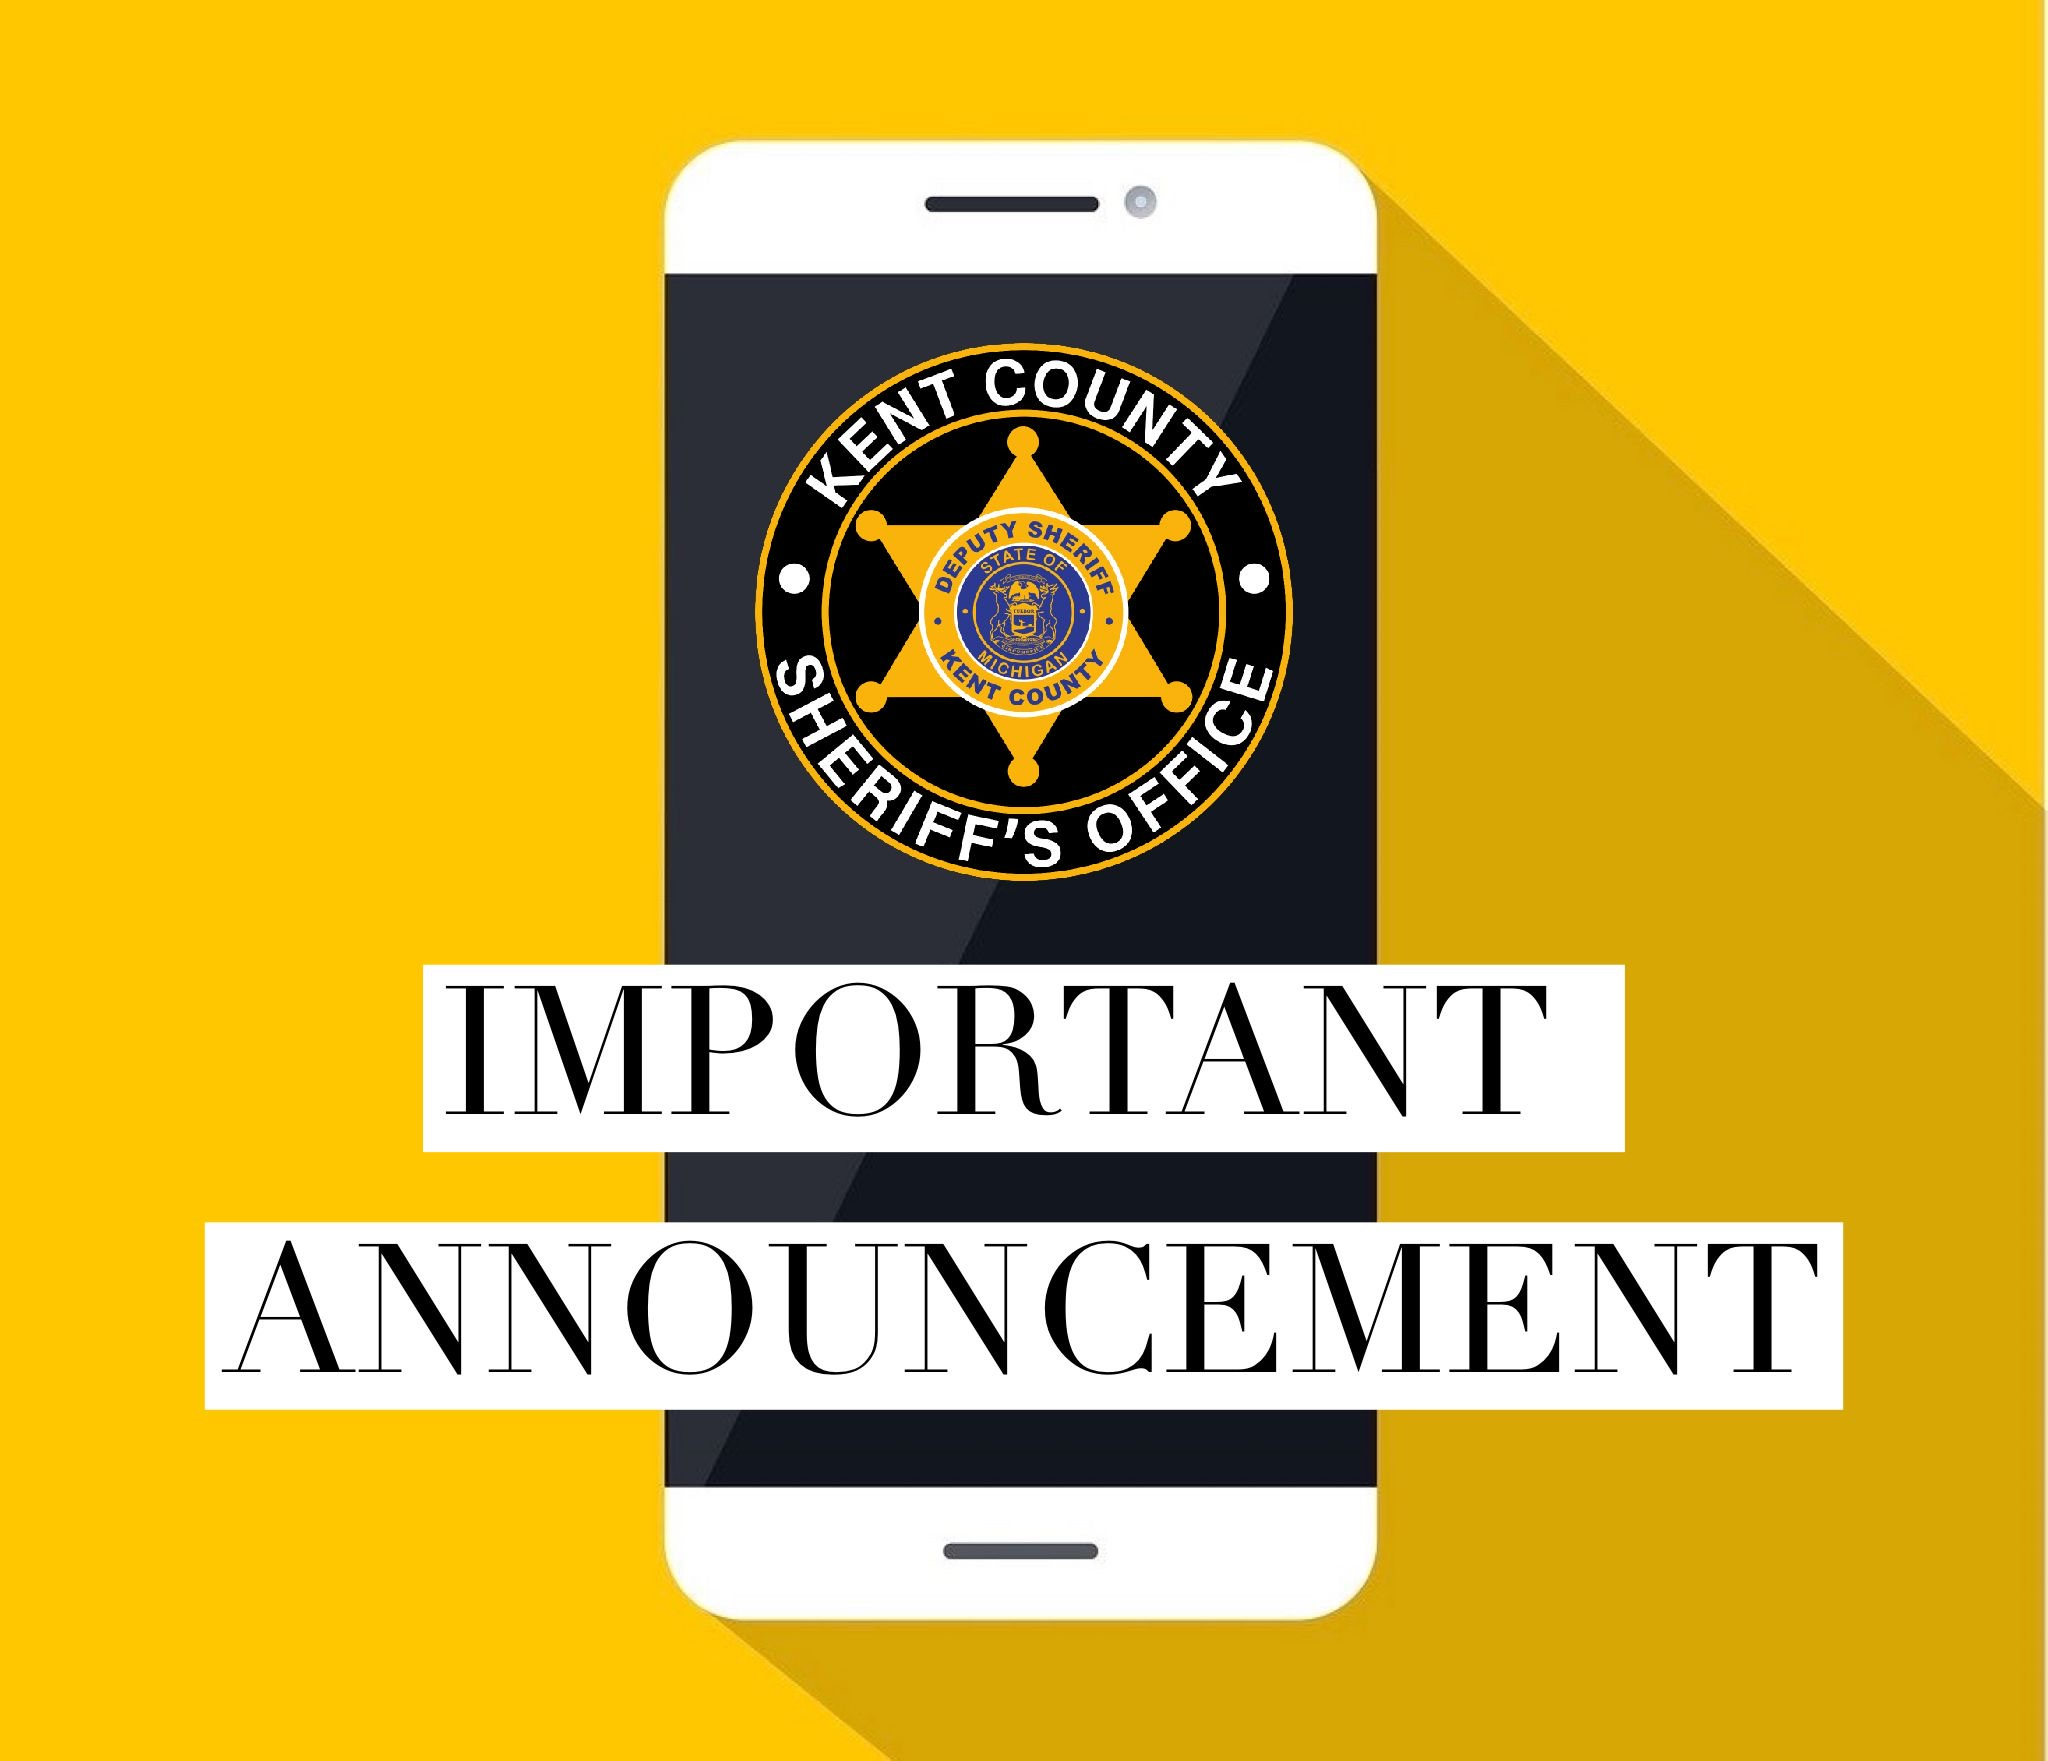 KCSO Events Cancelled due to COVID-19